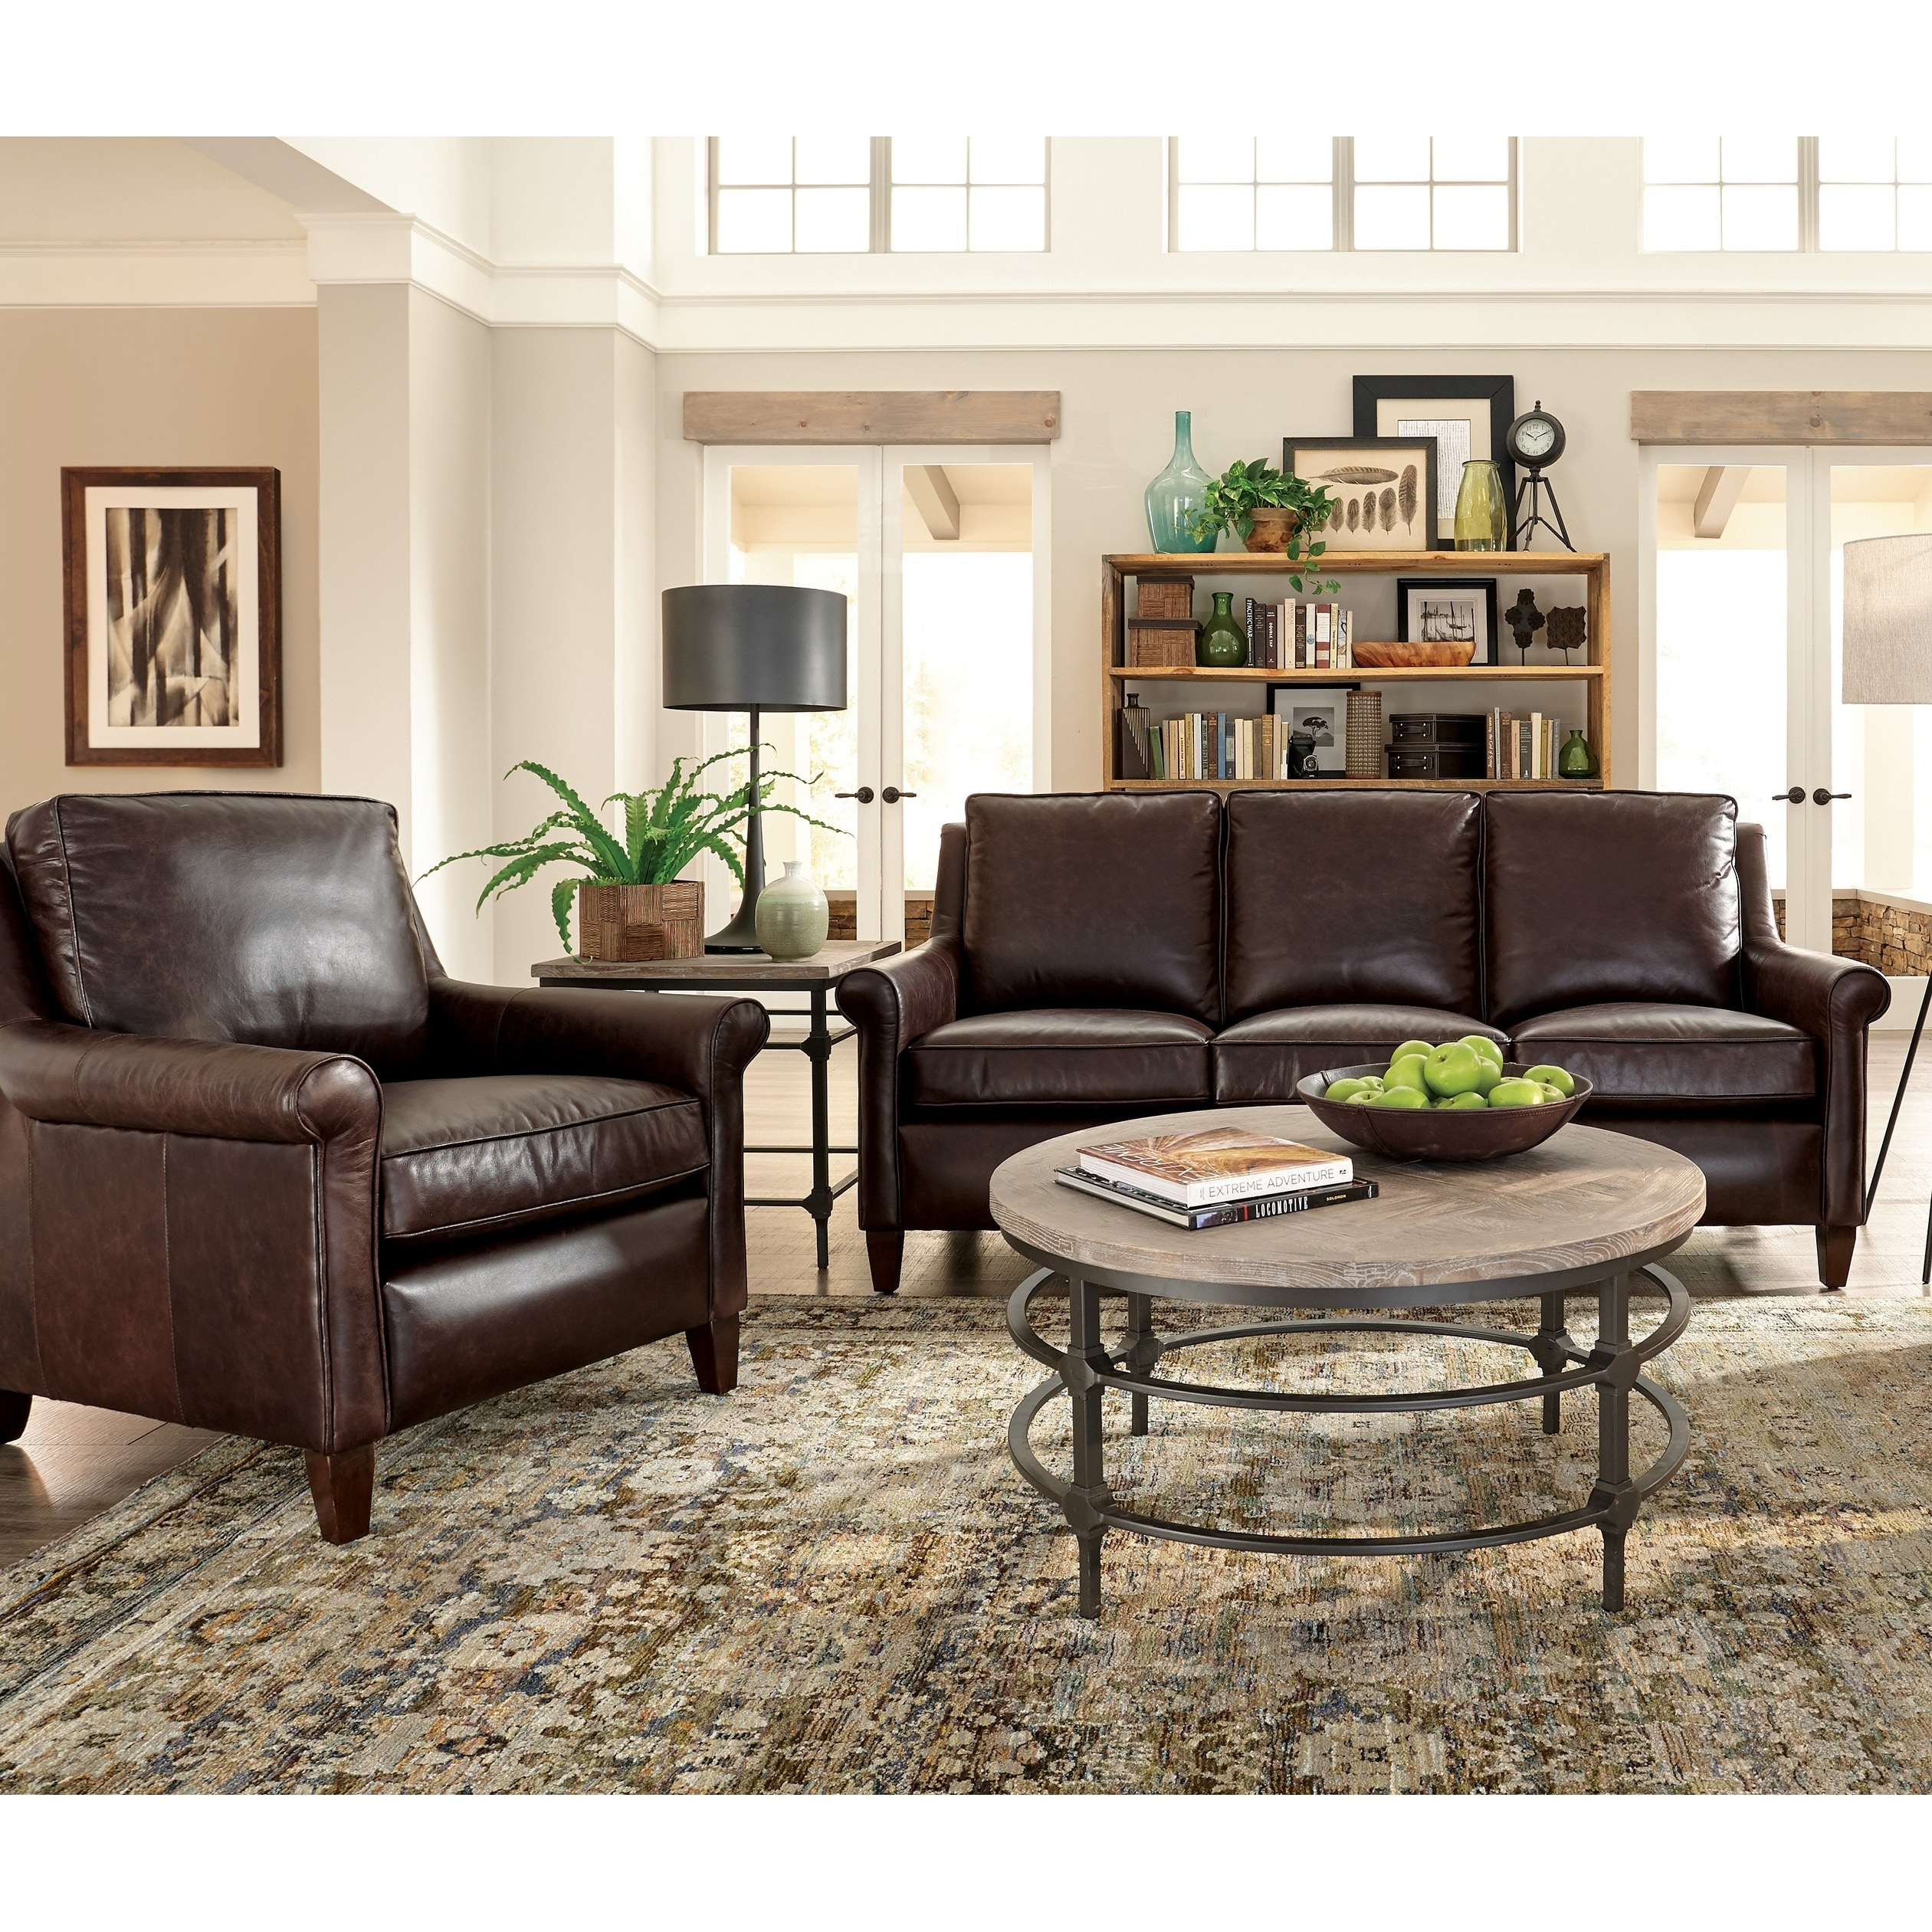 Jericho Two Piece Dark Brown Leather Sofa and Chair Living Room Set